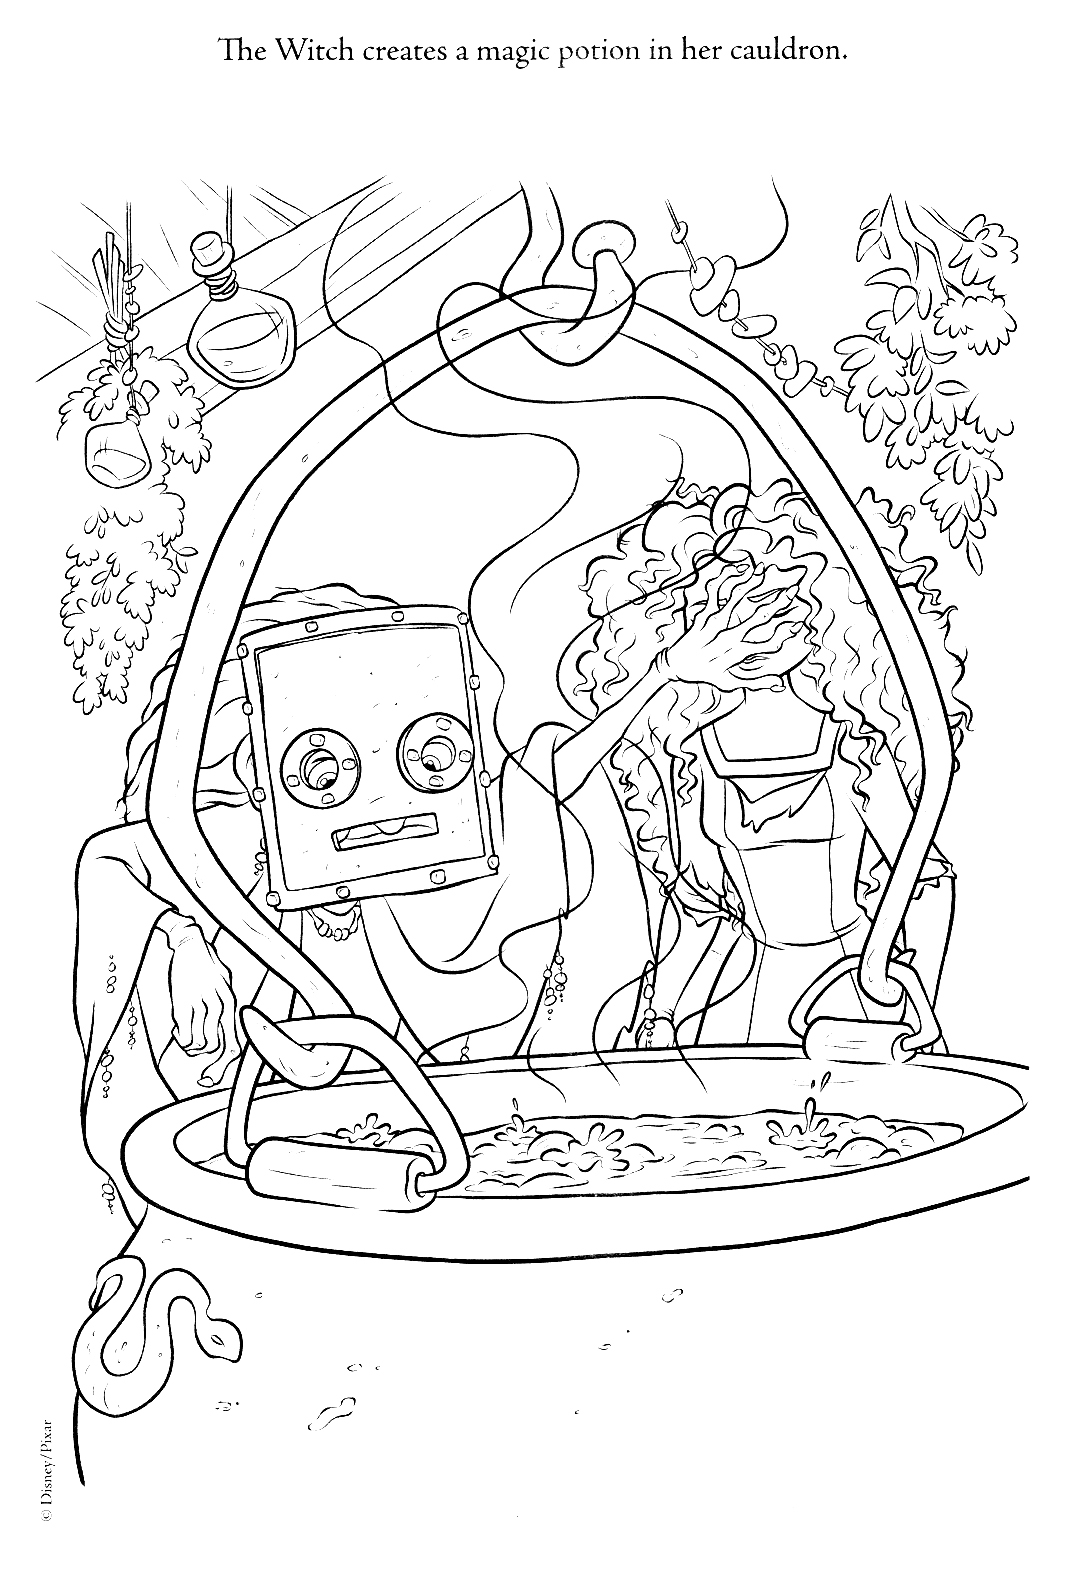 New ব্রেভ coloring pages (A bit spoiler)